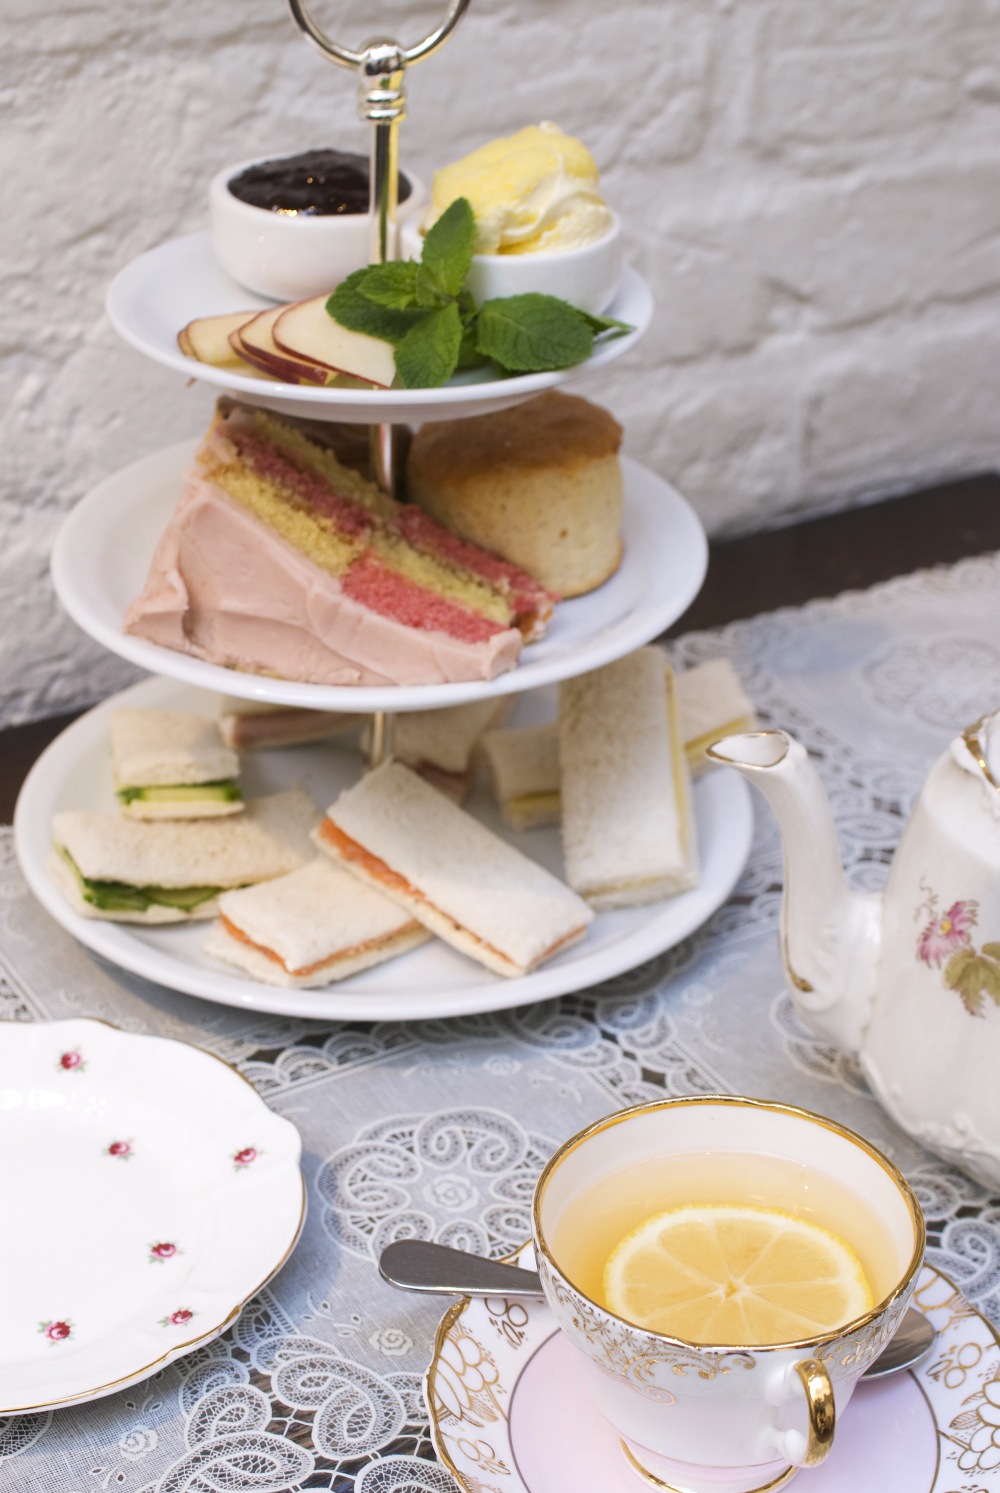 Indulge in afternoon tea at Orange Pekoe